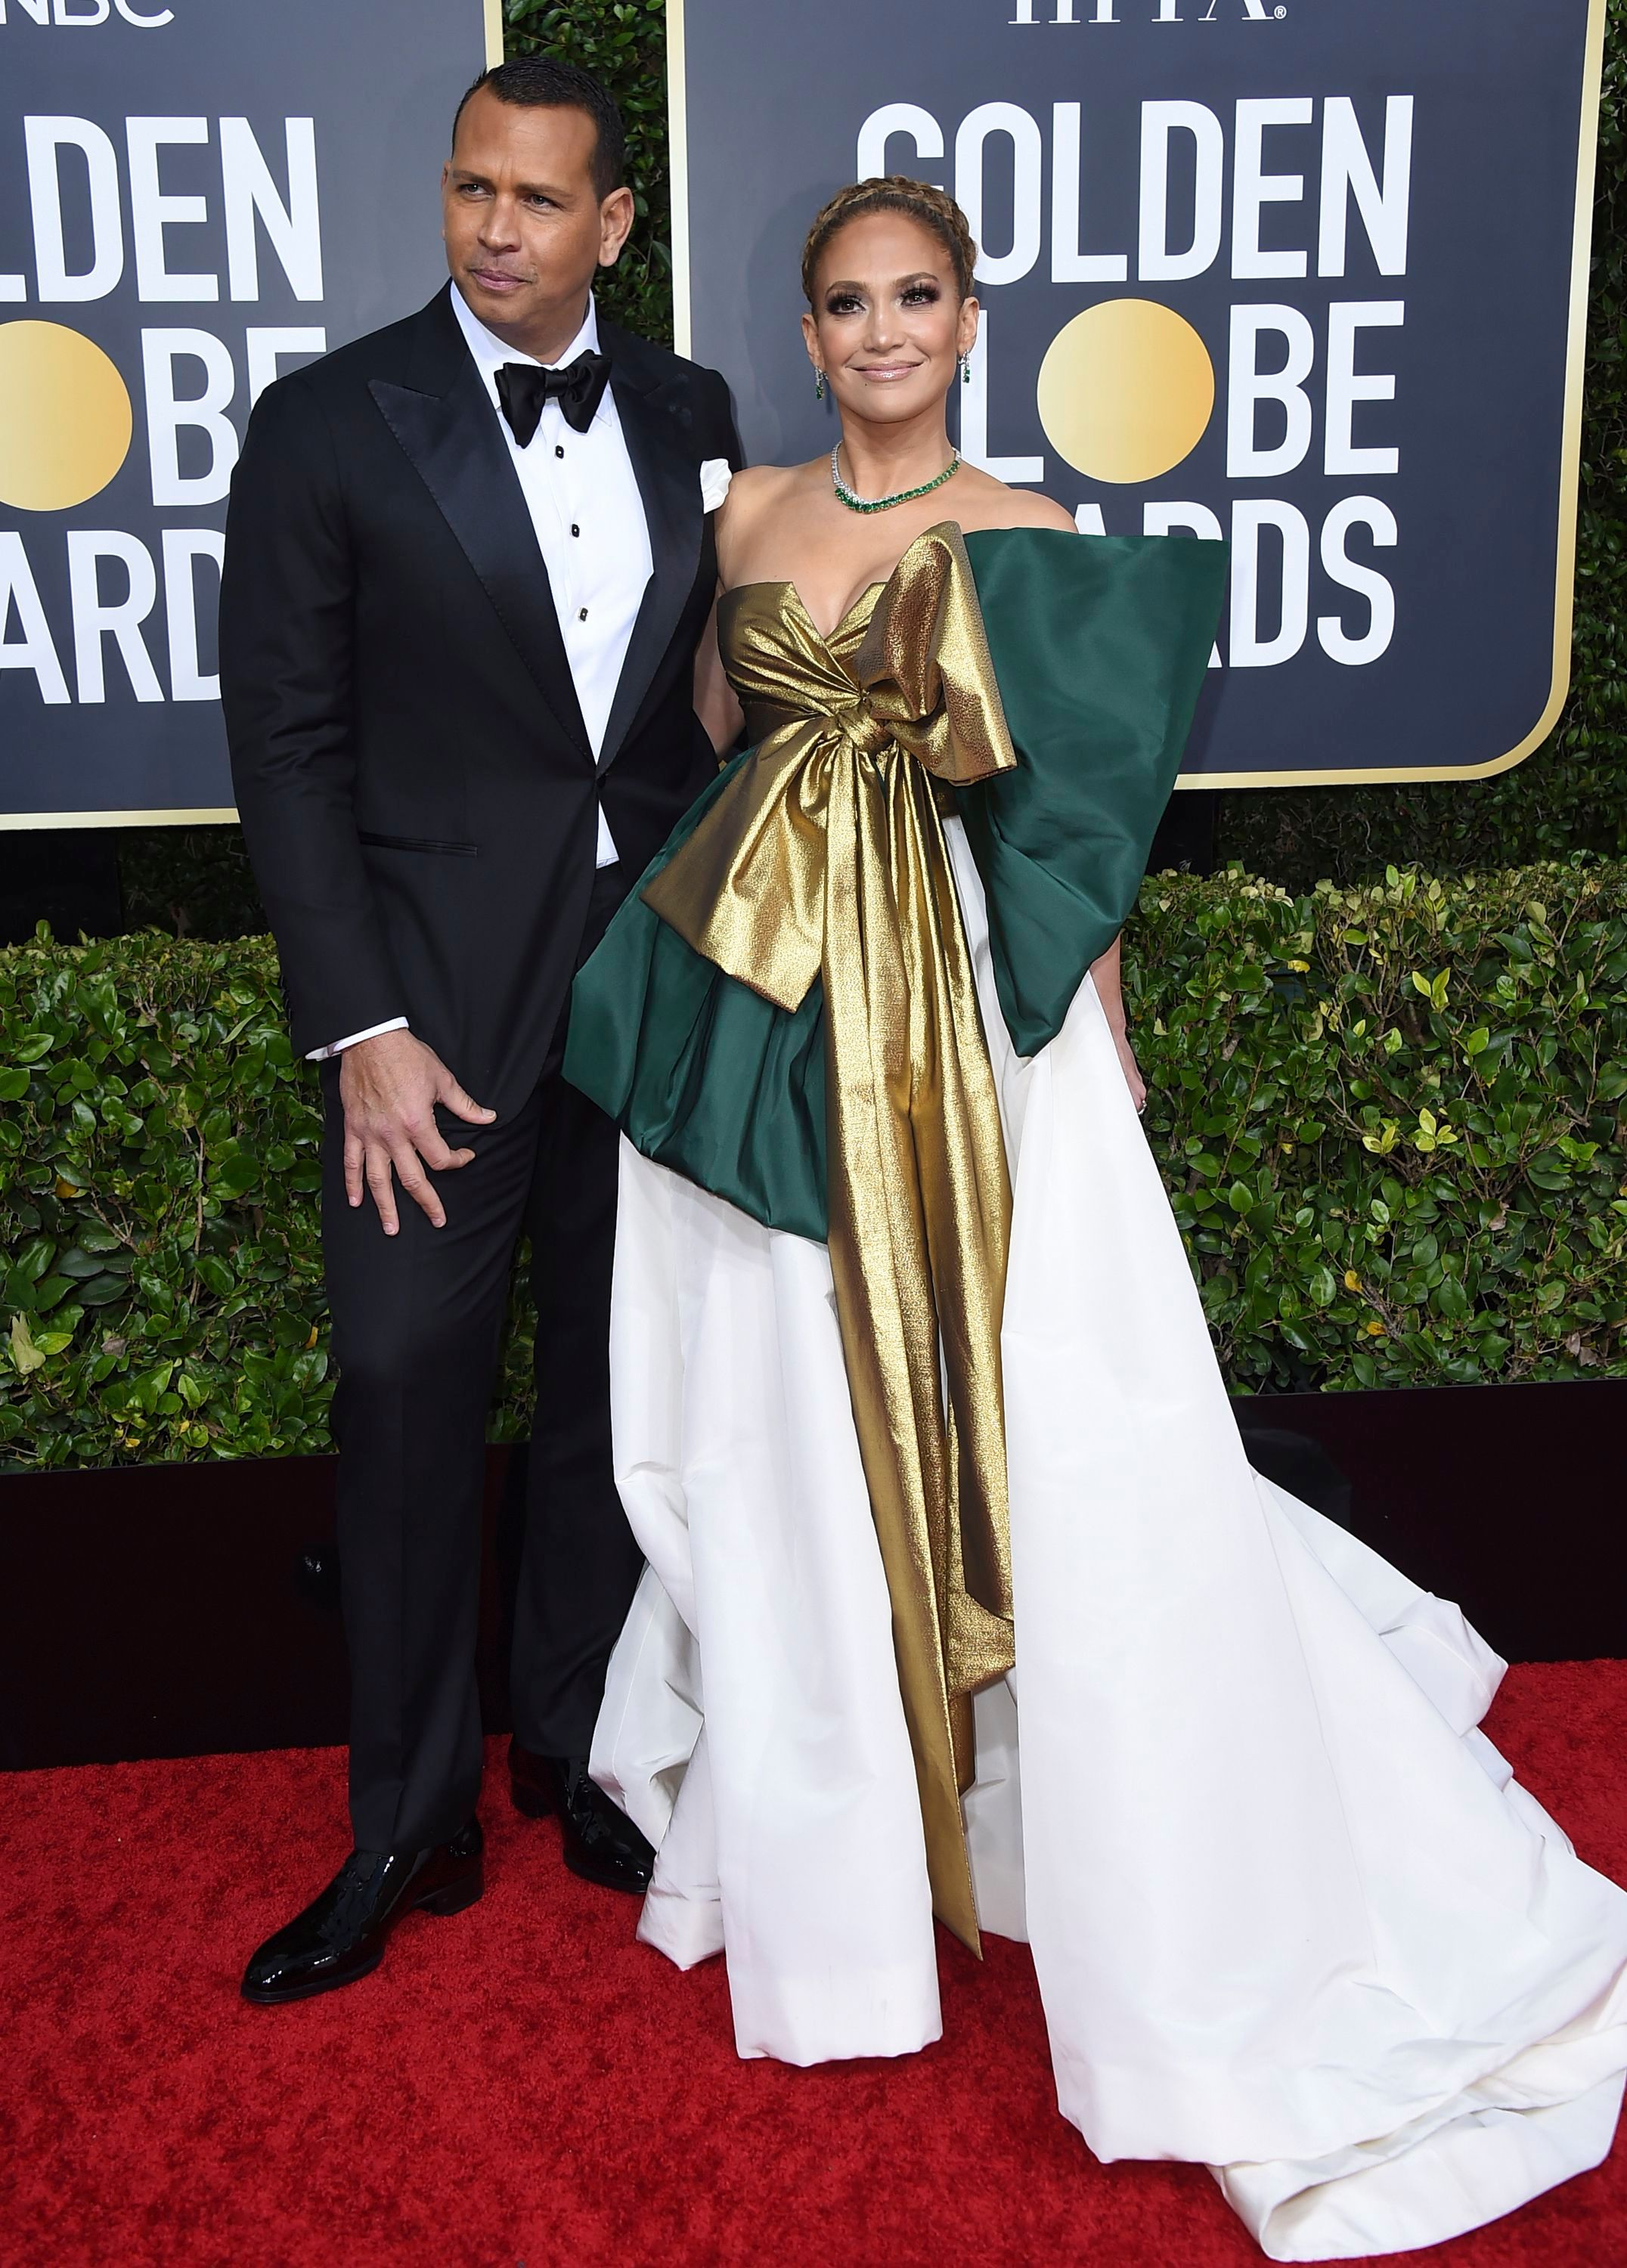 Alex Rodriguez, Jennifer Lopez. Alex Rodriguez, left, and Jennifer Lopez arrive at the 77th annual Golden Globe Awards at the Beverly Hilton Hotel, in Beverly Hills, Calif77th Annual Golden Globe Awards - Arrivals, Beverly Hills, USA - 05 Jan 2020